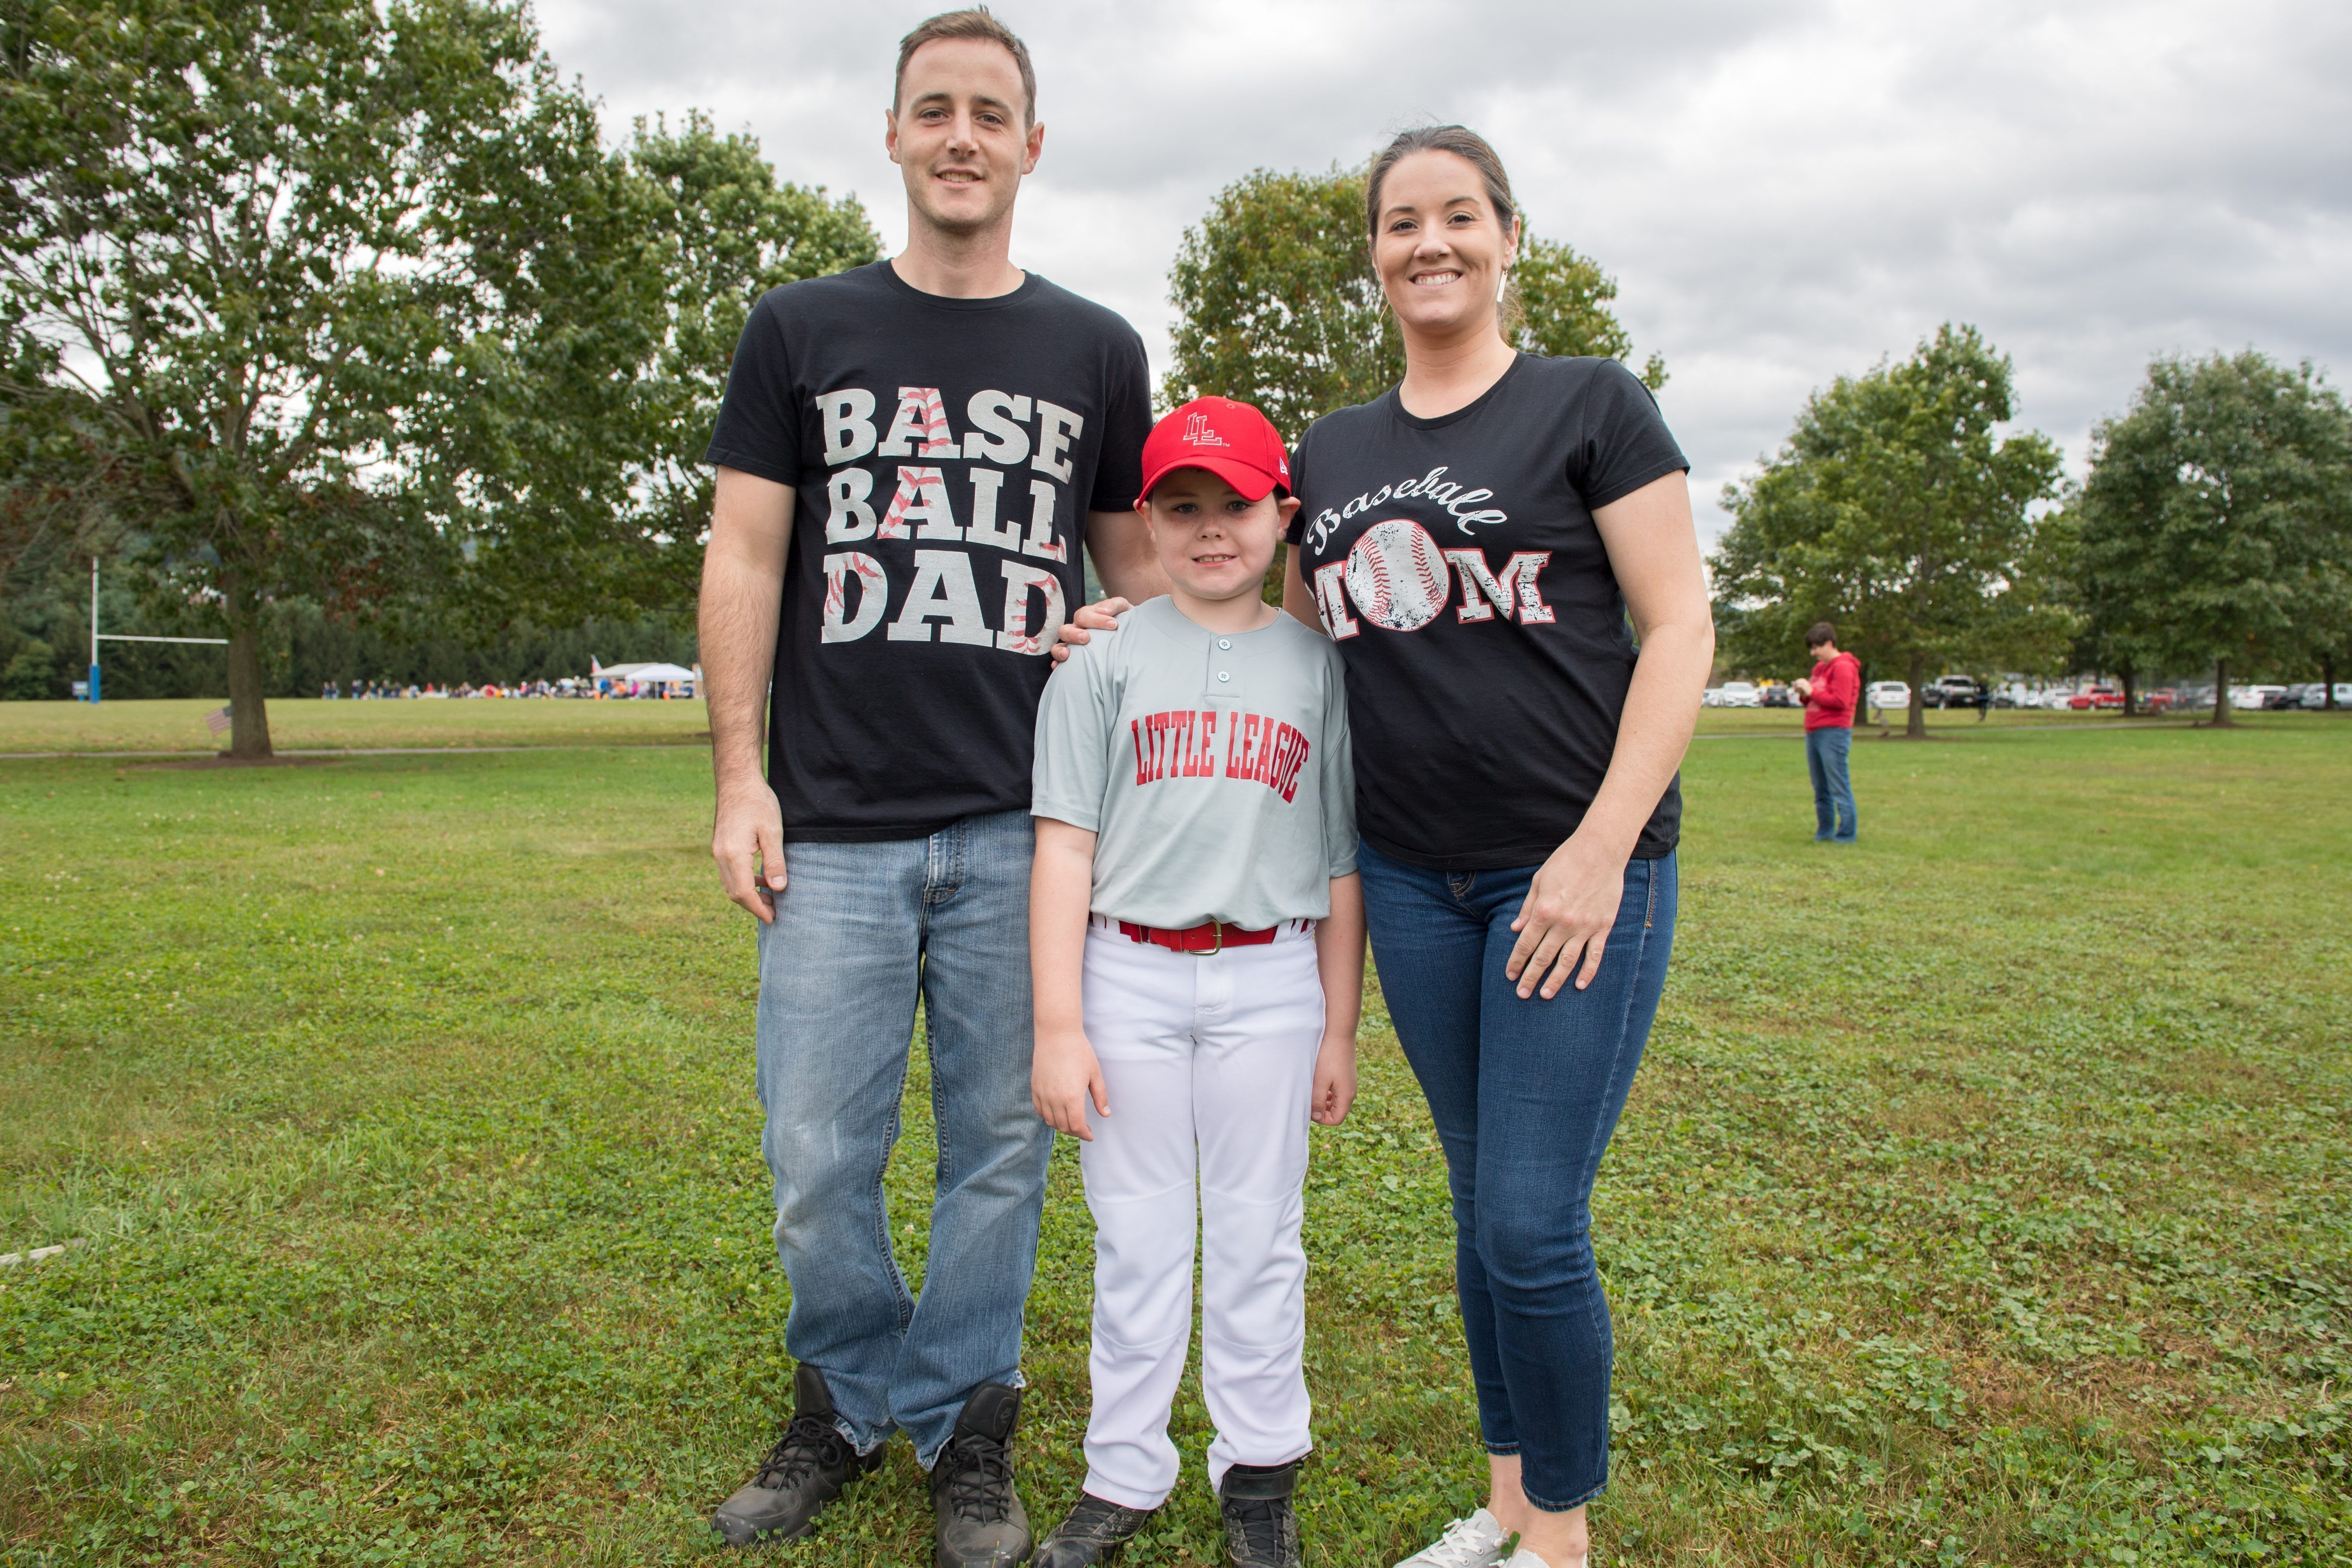 Little League Mom and Dad